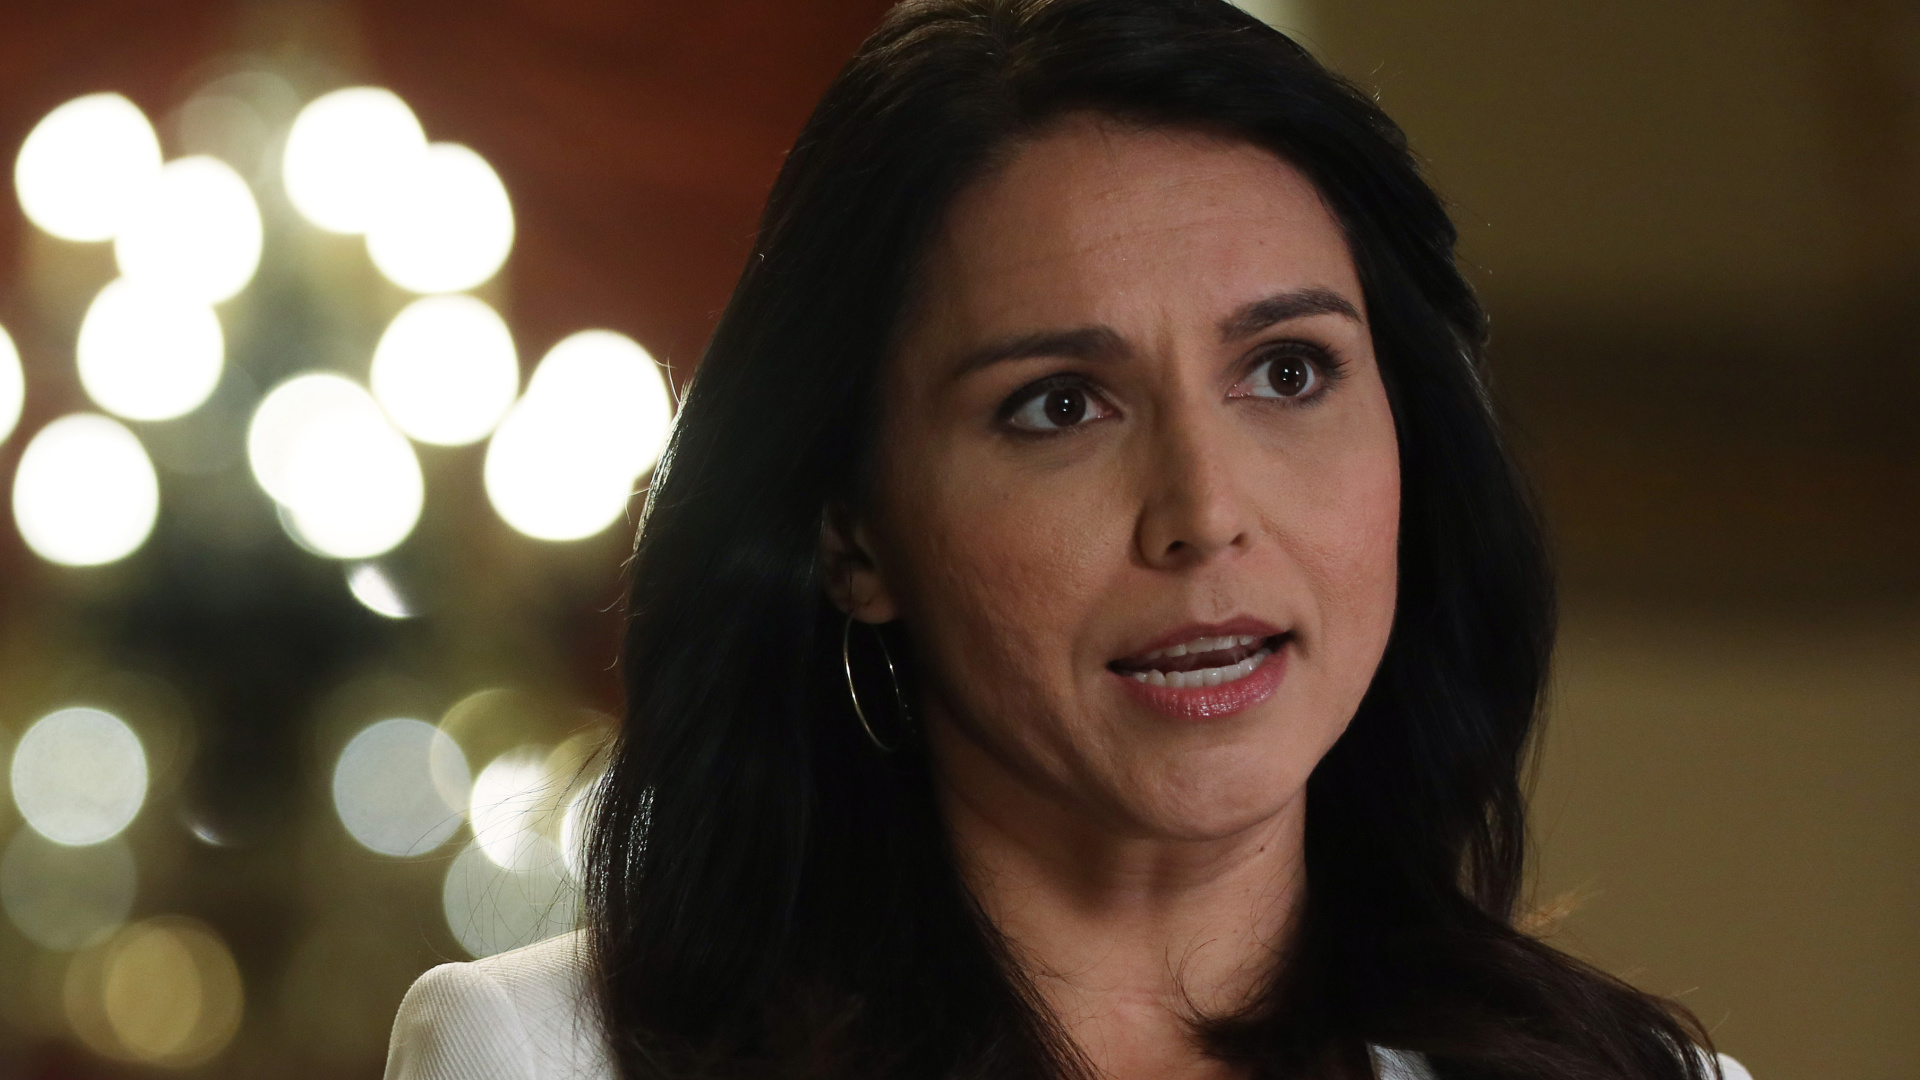 Rep. Tulsi Gabbard (D-HI) speaks during an interview at the U.S. Capitol on Jan. 9, 2020. (Alex Wong/Getty Images)